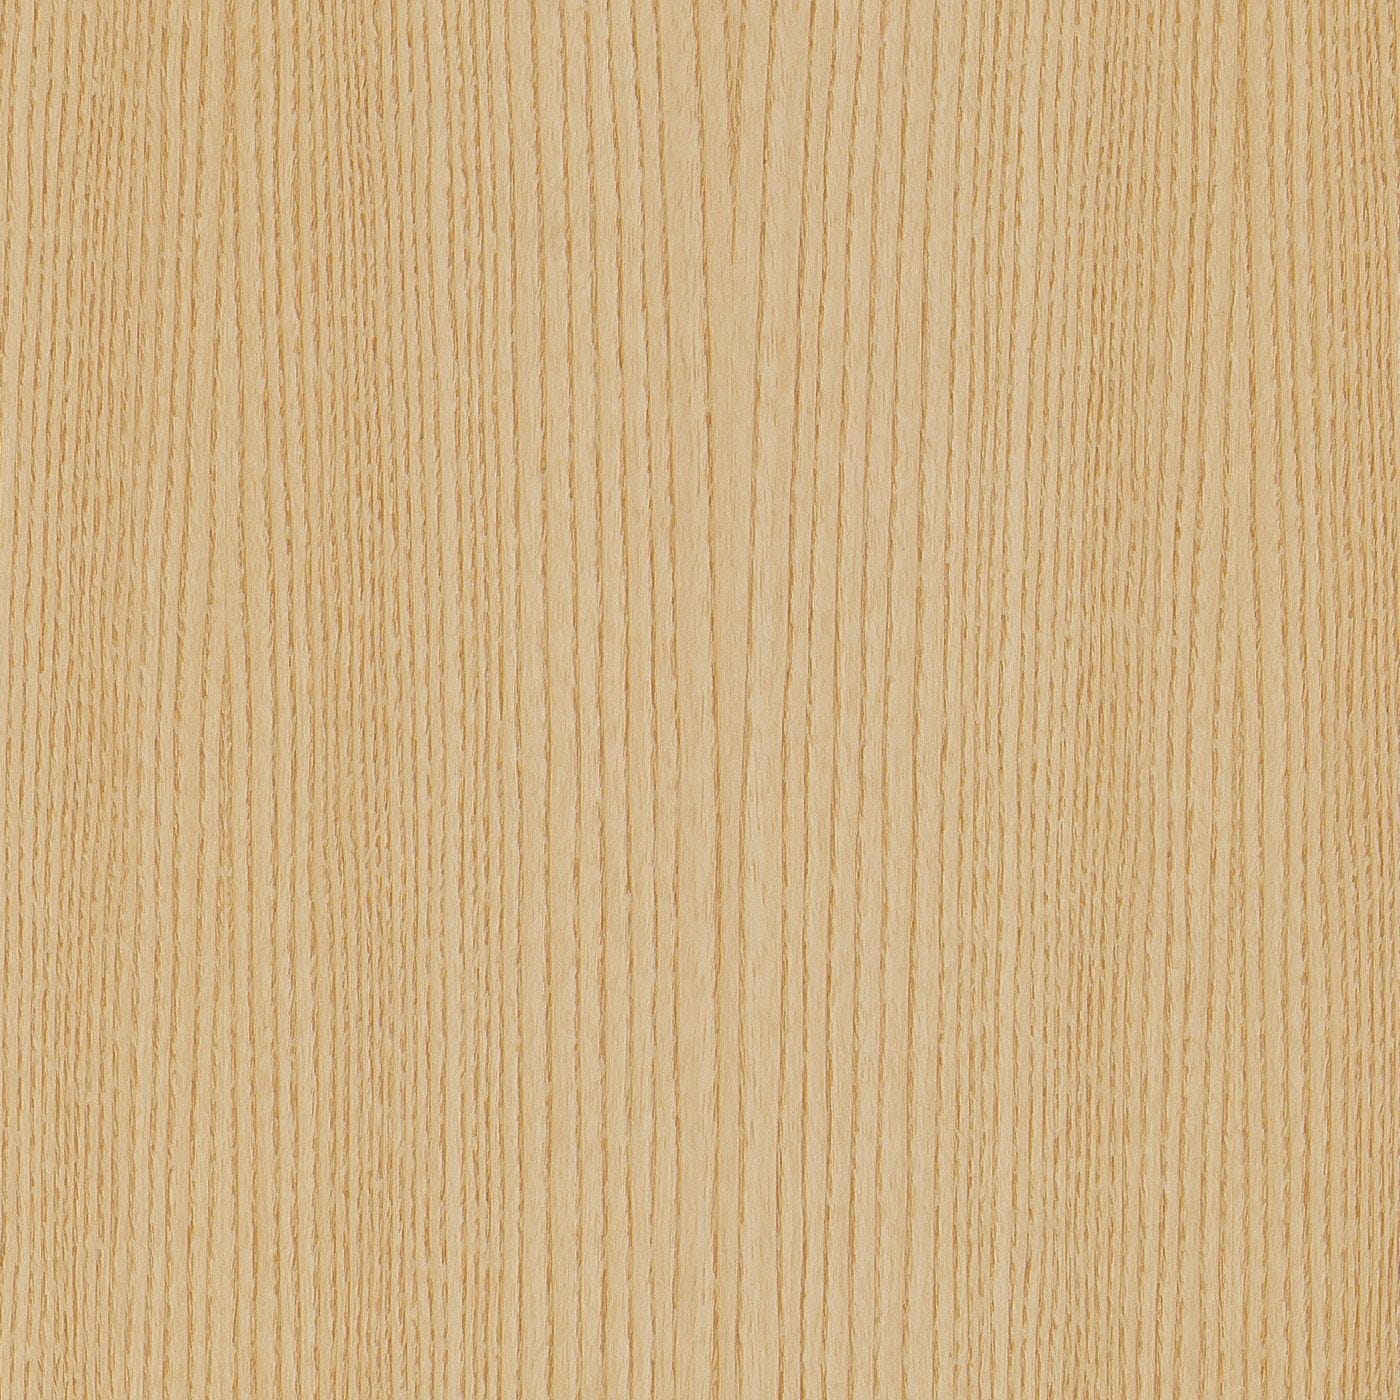 wooden veneer prefinished hpl golden oak